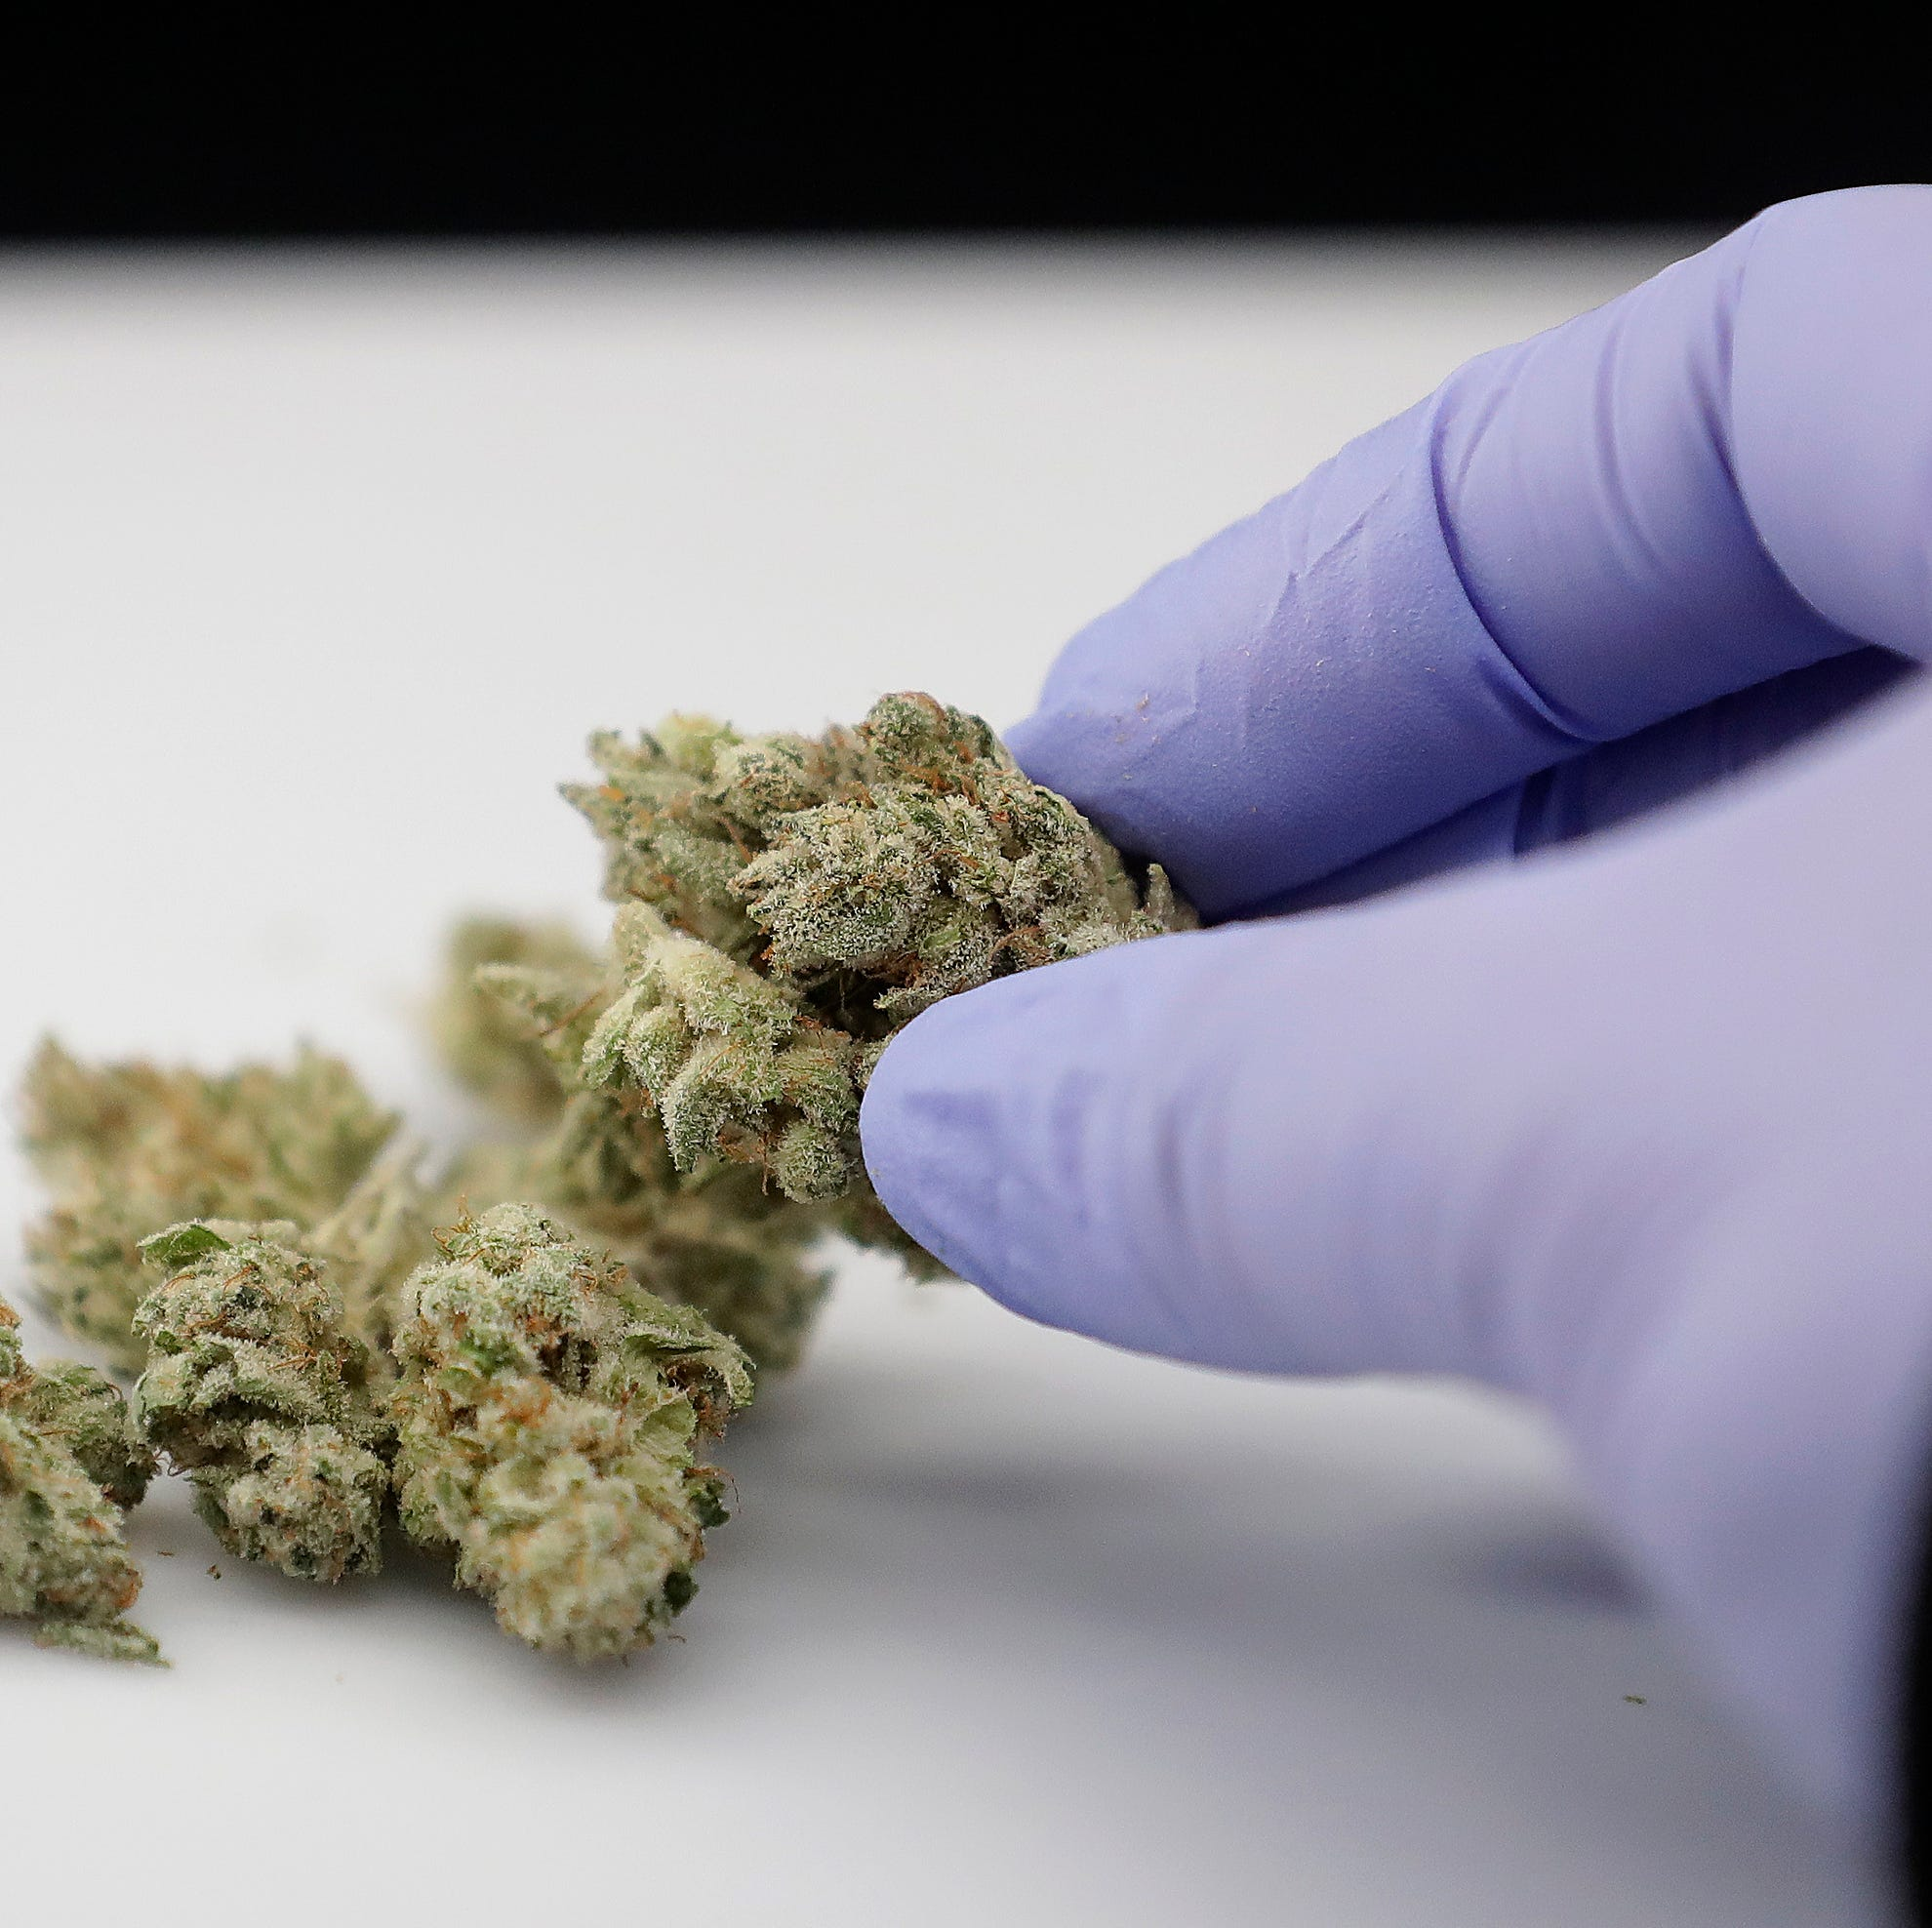 Utah's largest health provider changes policy on marijuana